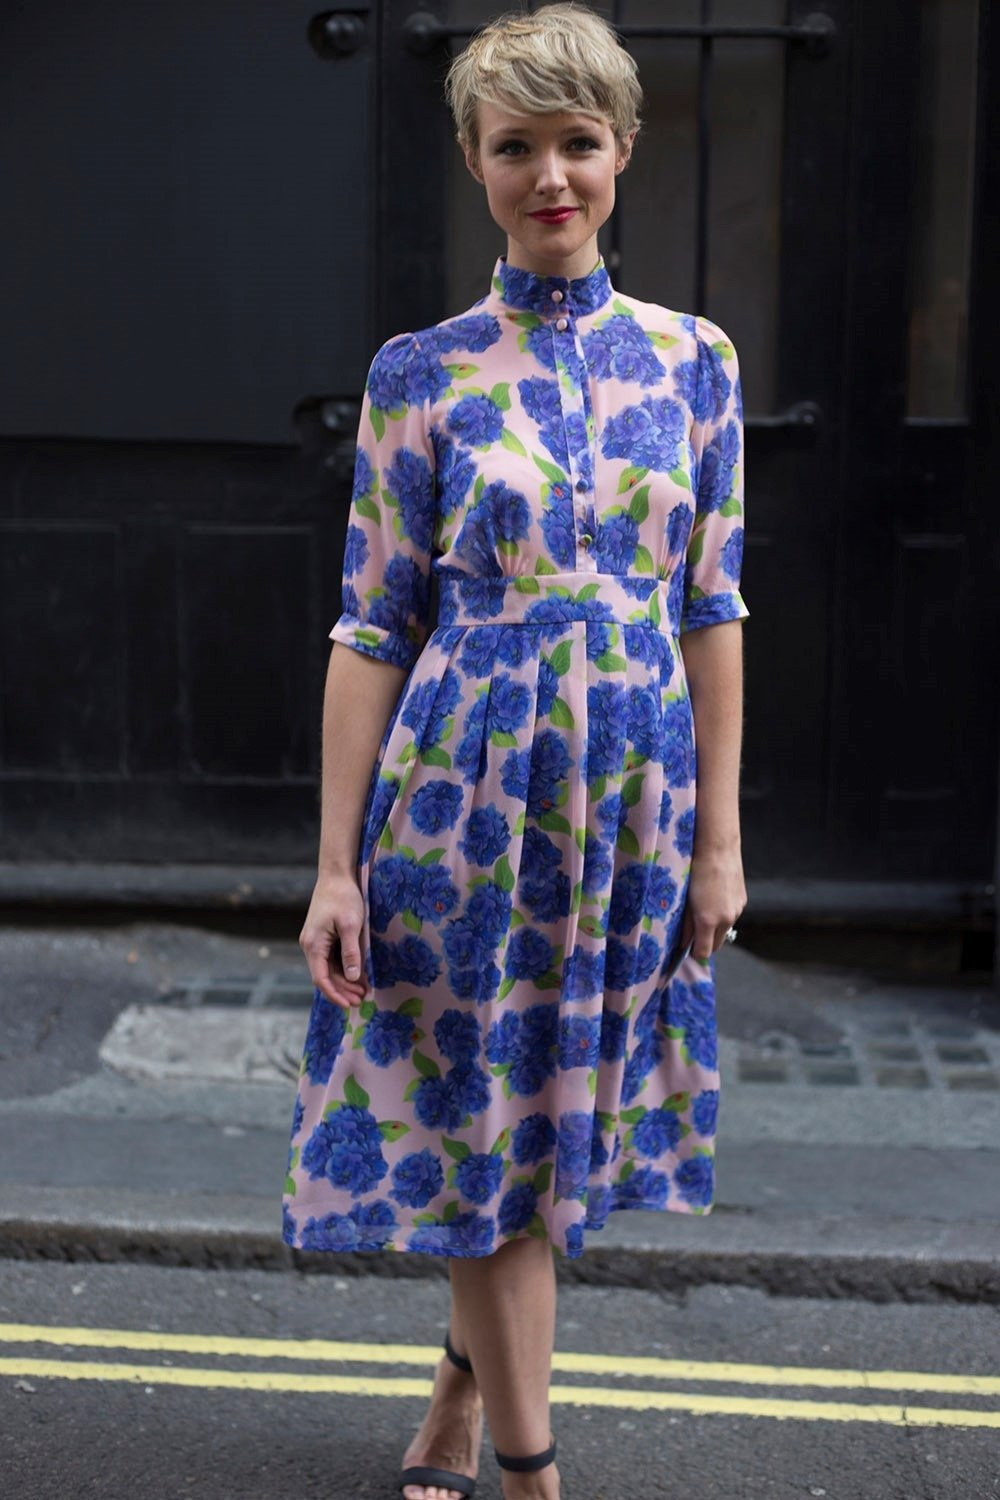 Blue and pink floral dress at Topshop